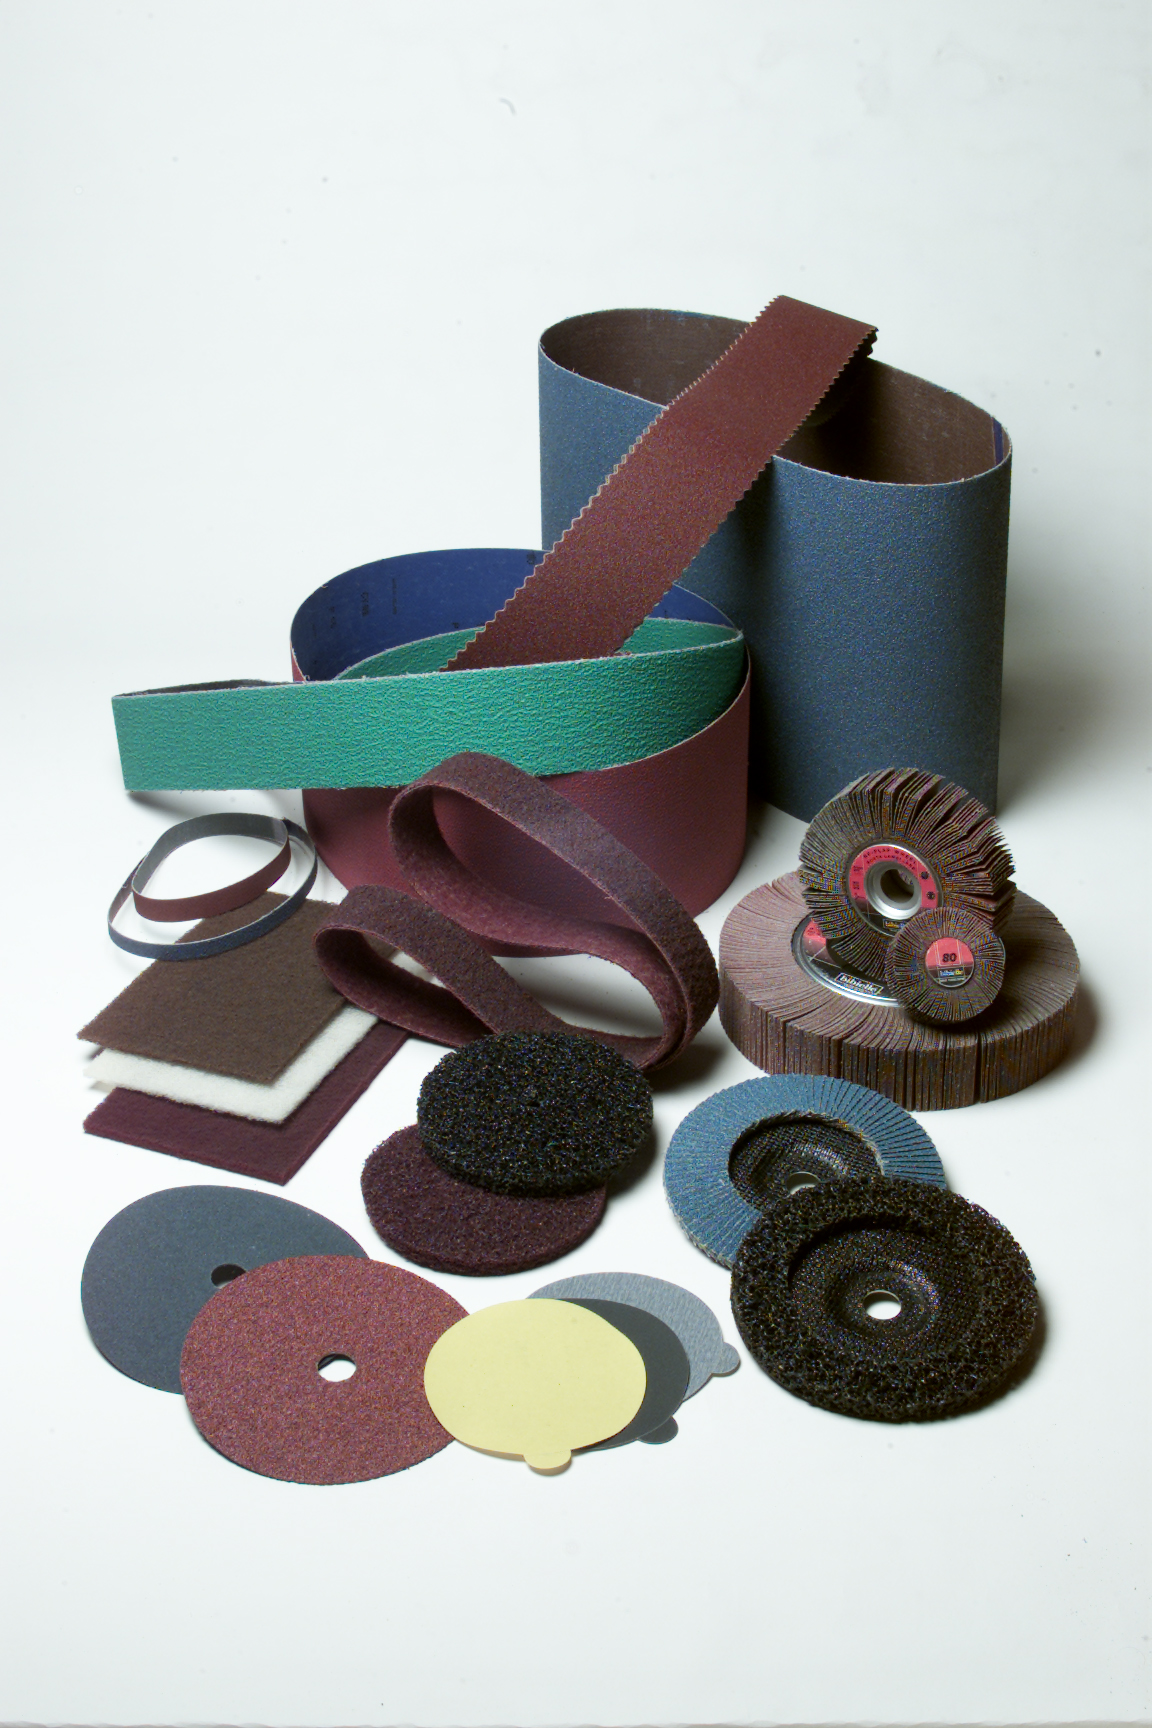 Abrasive Supplies from PAI